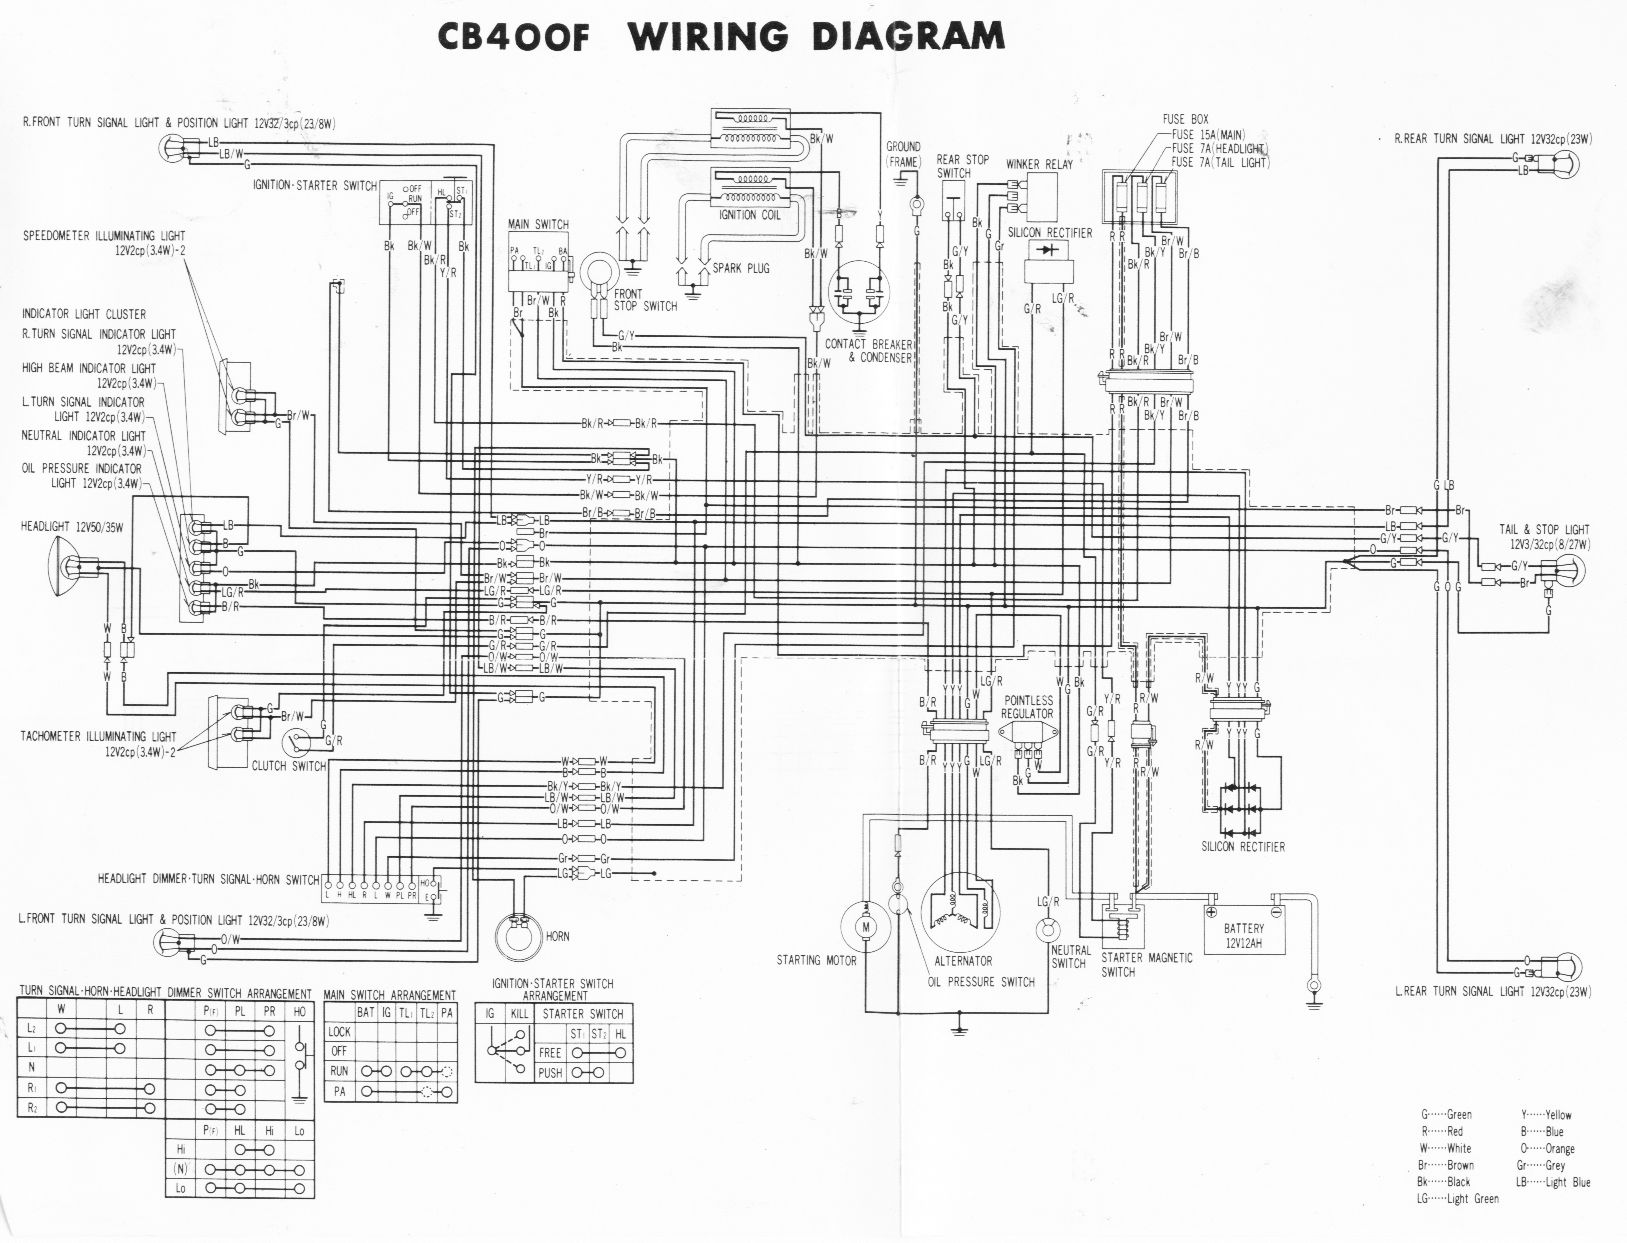 wire schematic for 1975 cj5